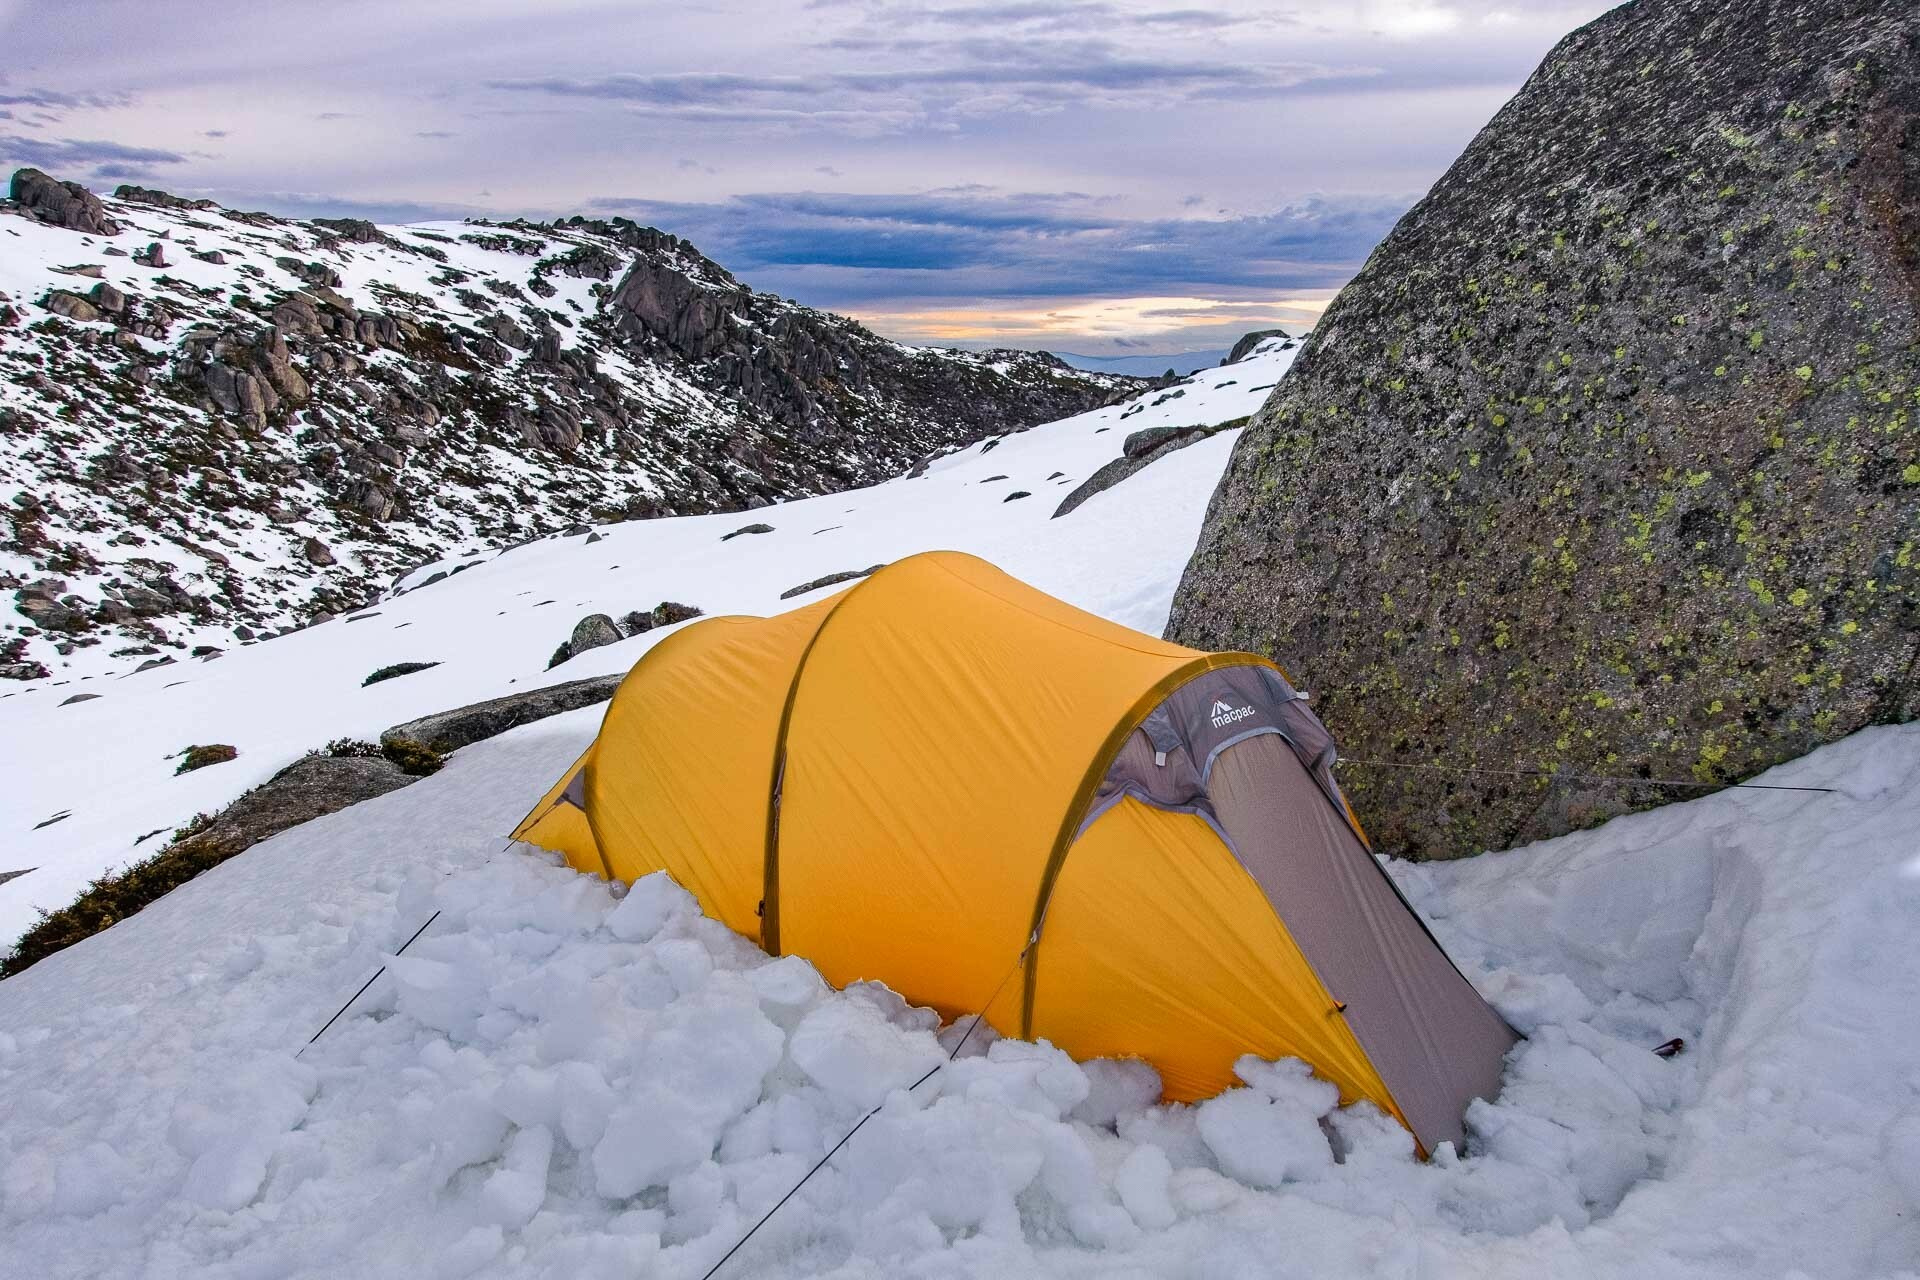 Hannels Spur – Climbing the Steep Western Face of Mt Kosciuszko, Richie Robinson, hannels spur, kosciuszko national park, nsw, snow camping, macpac